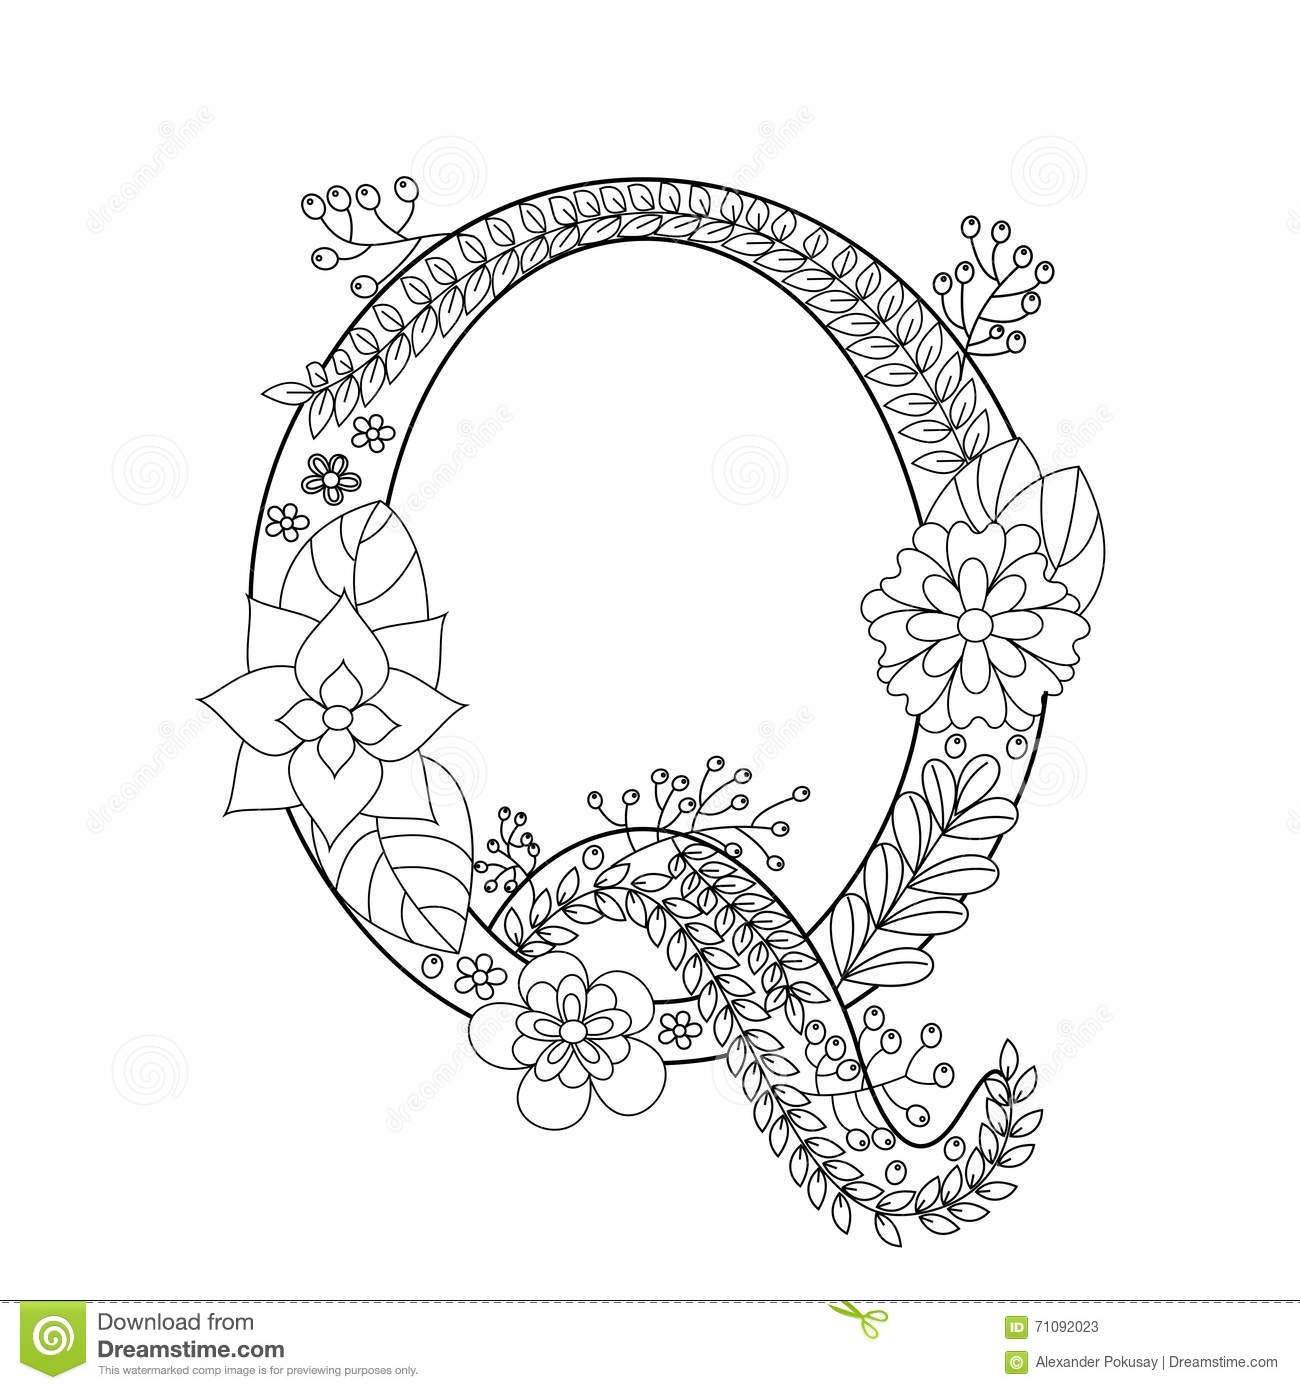 Letter Q Coloring Book For Adults Vector Stock Vector ...